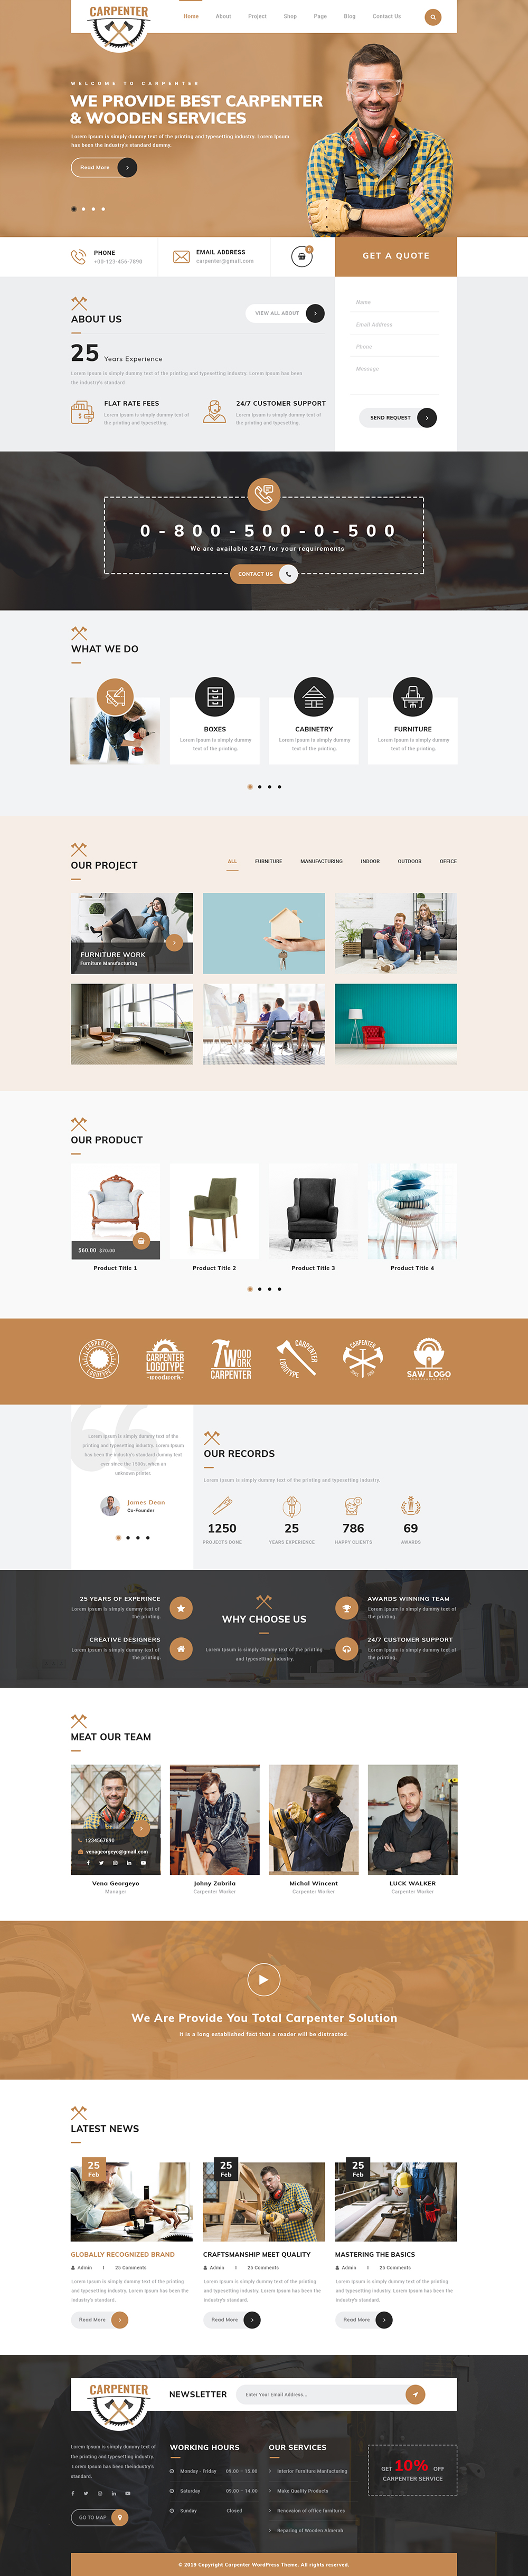 Carpenter WordPress Theme for Wood Shops and Carpenters